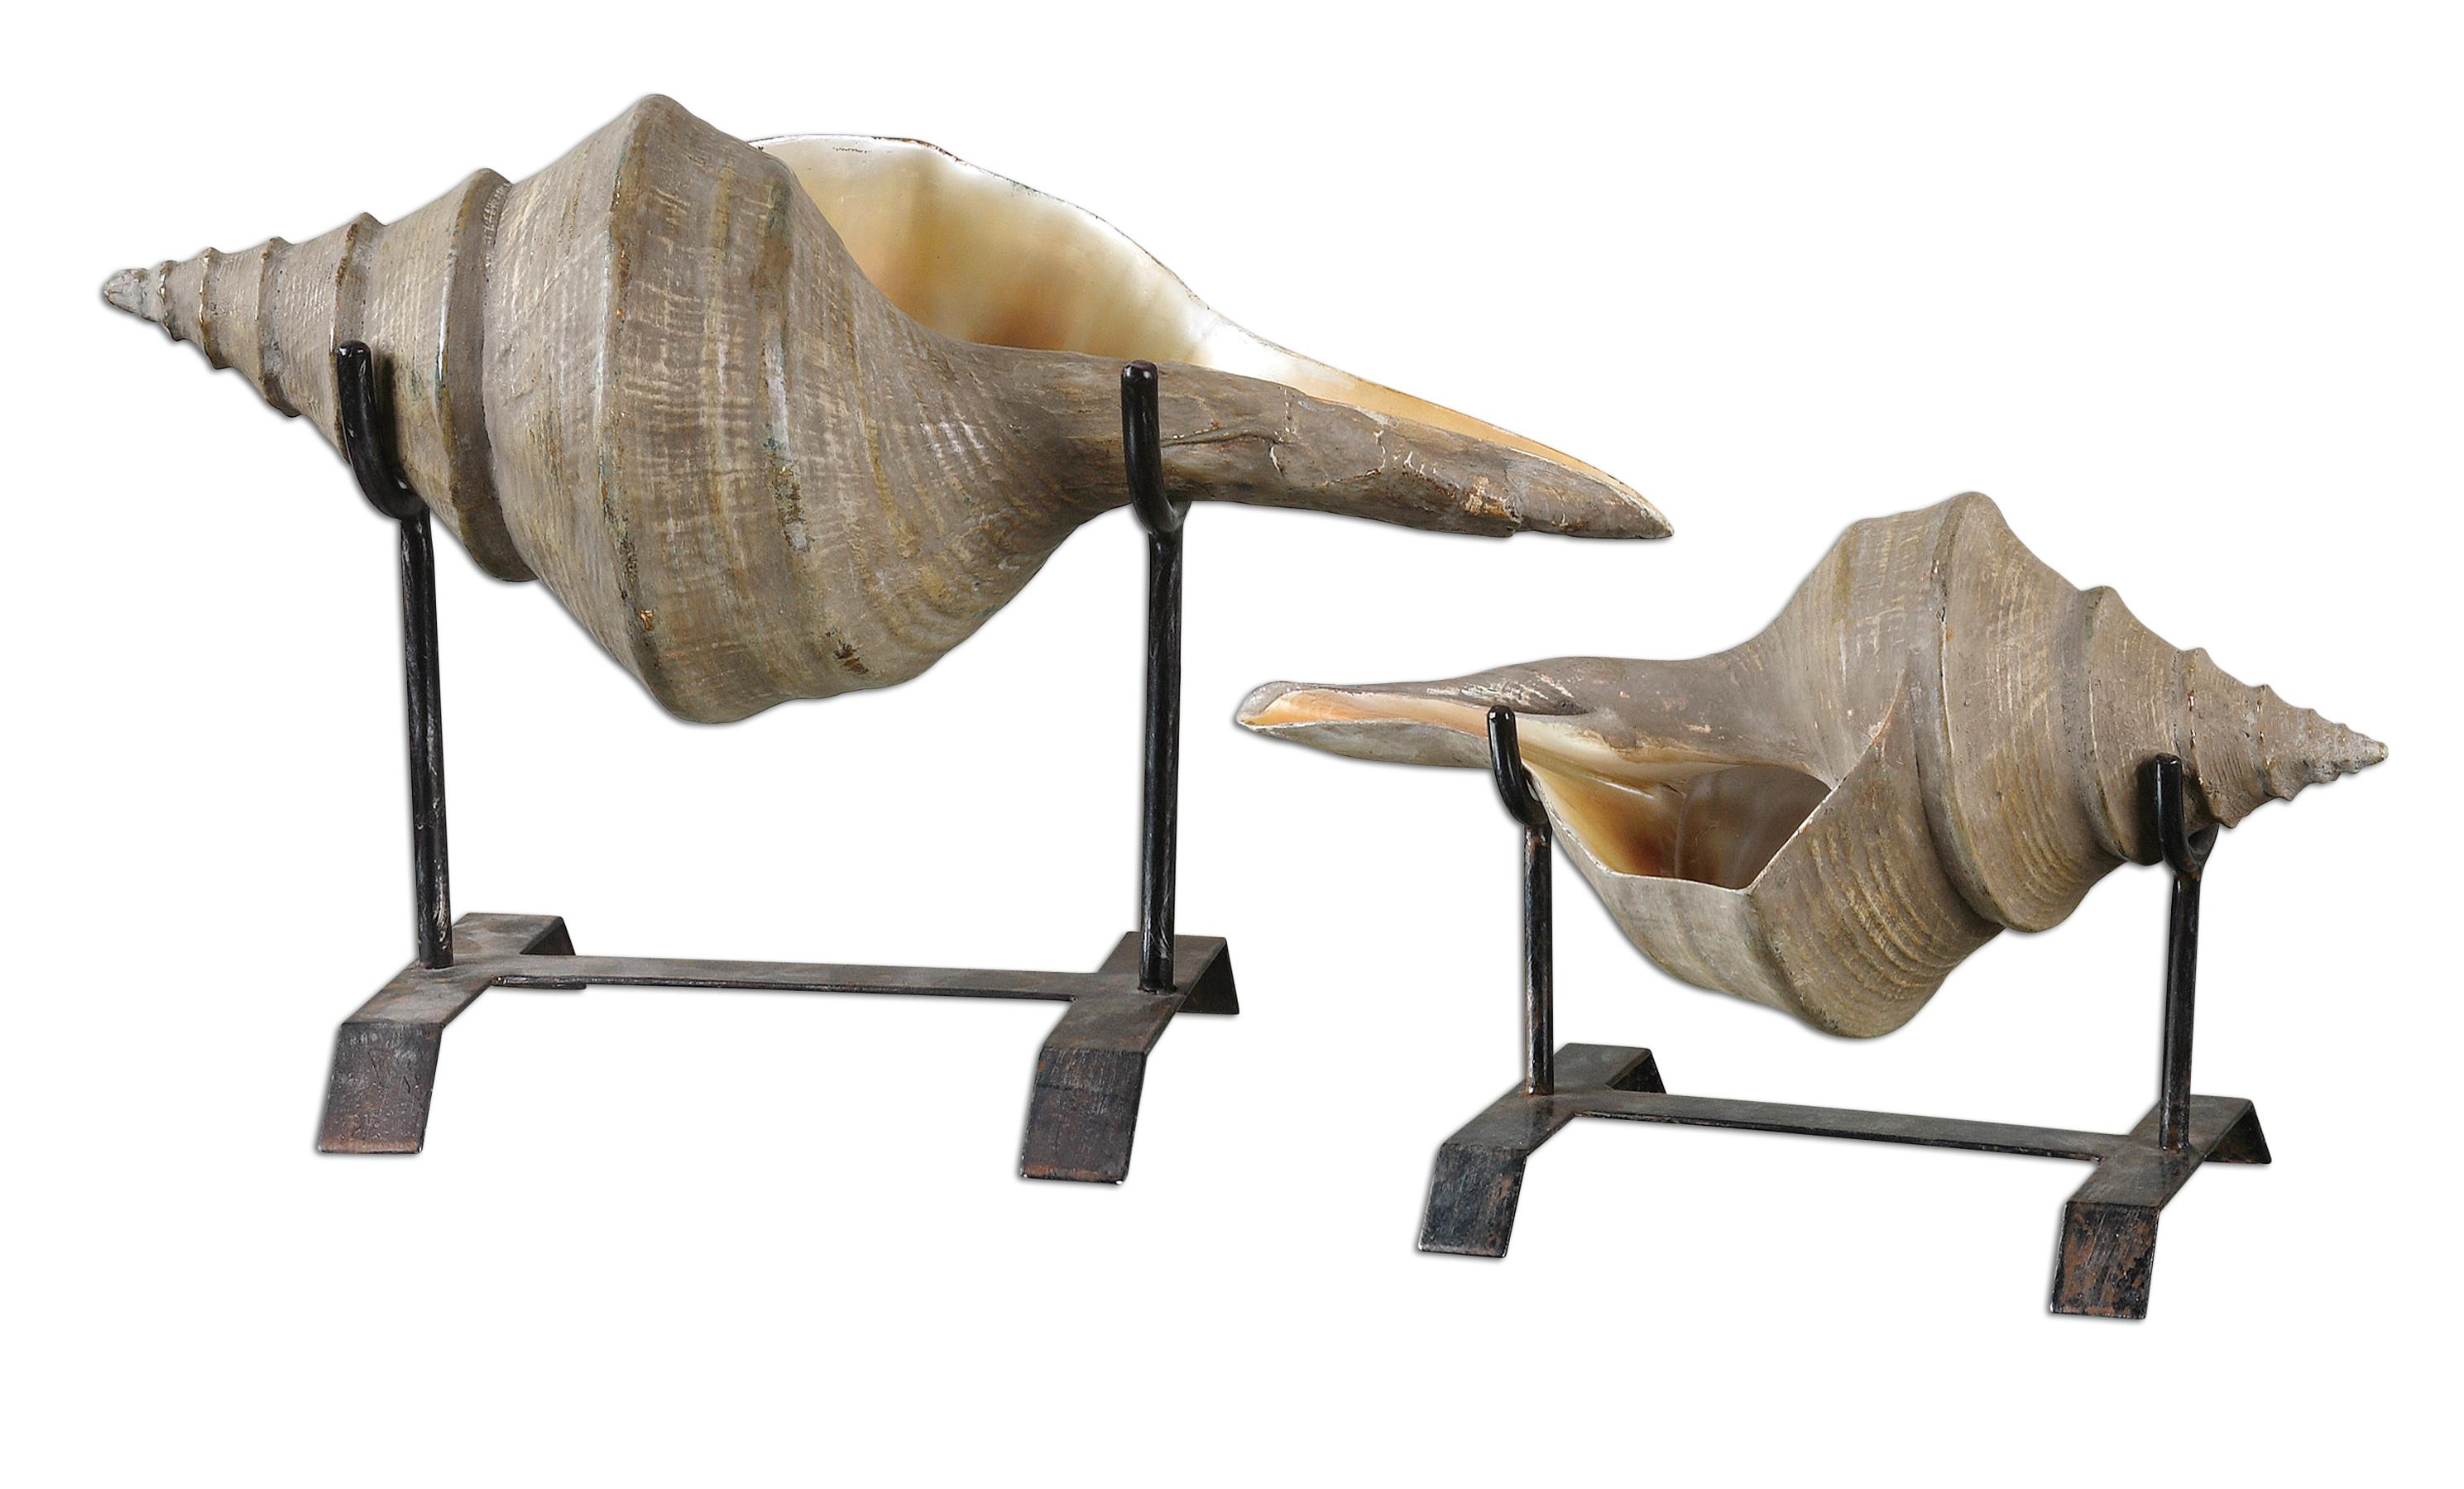 Uttermost Accessories Conch Shell Sculpture Set of 2 - Item Number: 19556